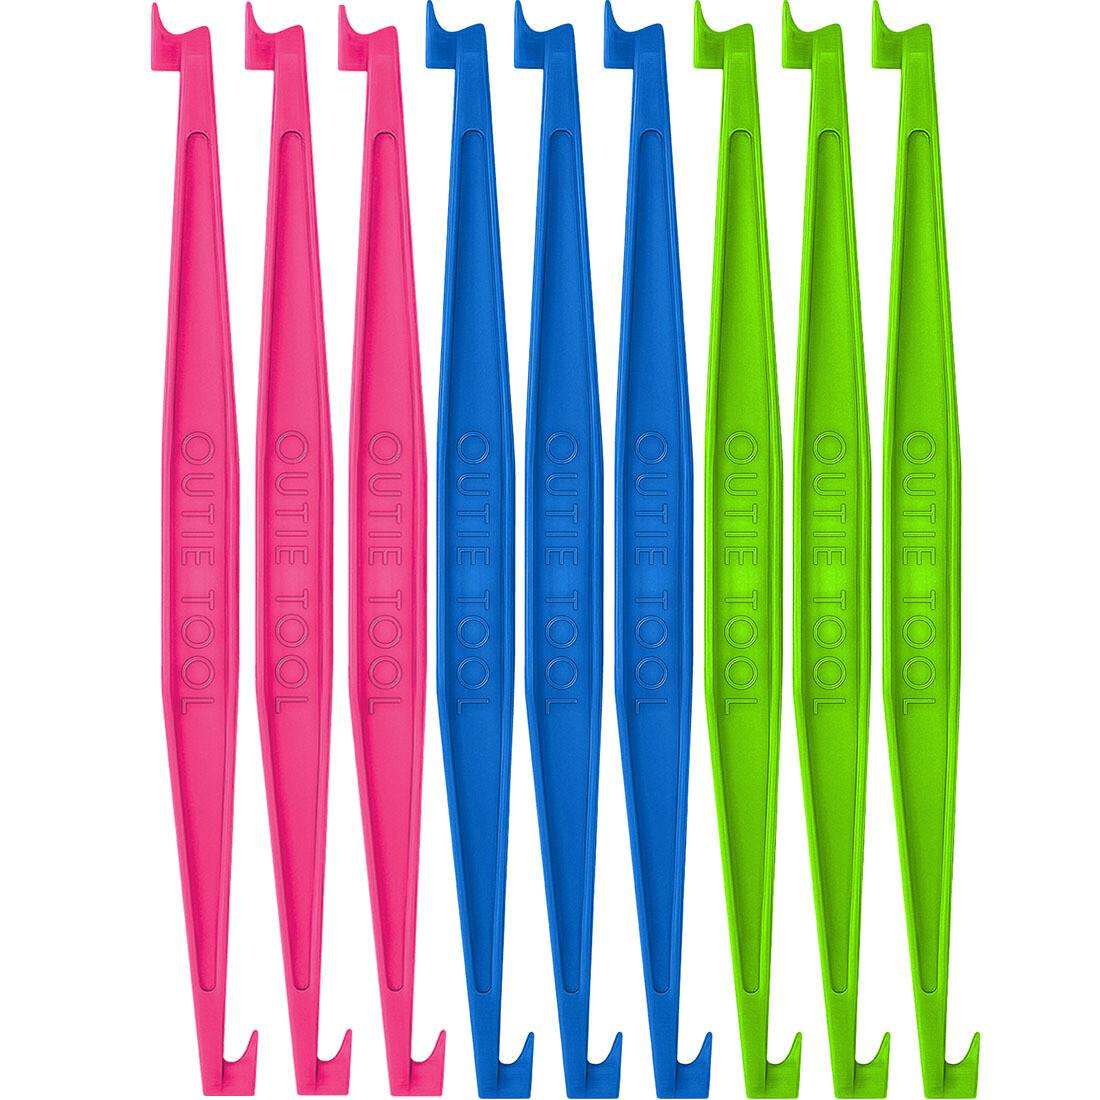 60 OUTIE TOOLS - 20 Hot Pink, 20 Sky Blue, 20 Neon Green  Individually Packaged Singles